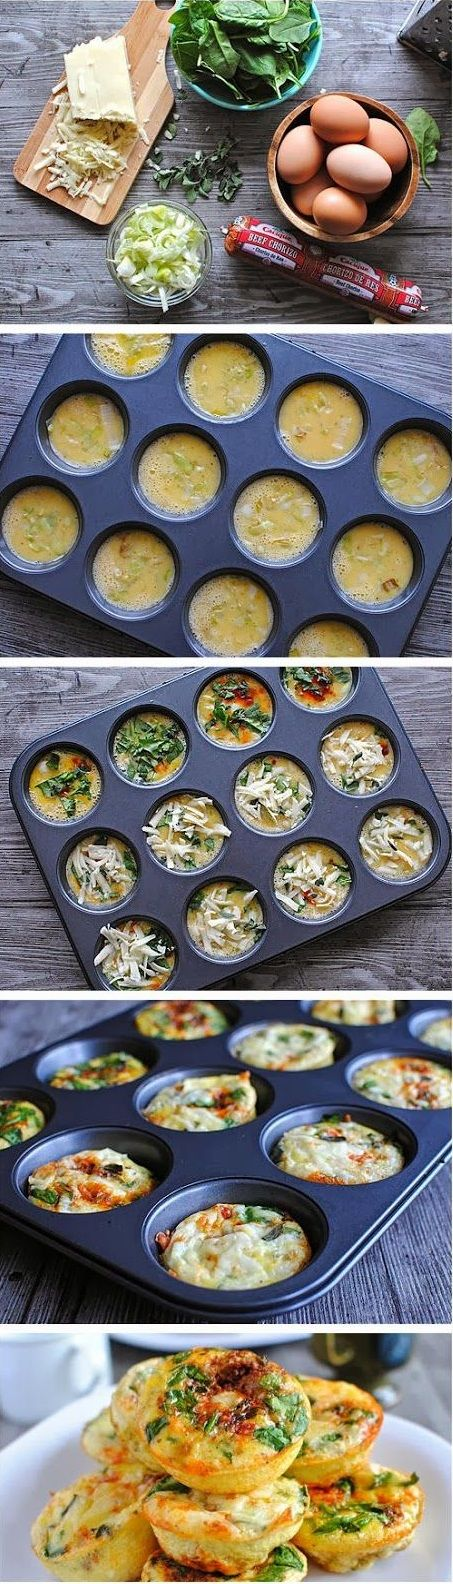 Mini Frittata Brunch Bar Ingredients 10 large eggs 1/2 cup cooked Mexican chorizo 1 cup spinach, finely chopped 1 leek, sliced lengthwise (green parts discarded) and thinly sliced into half moons 1…